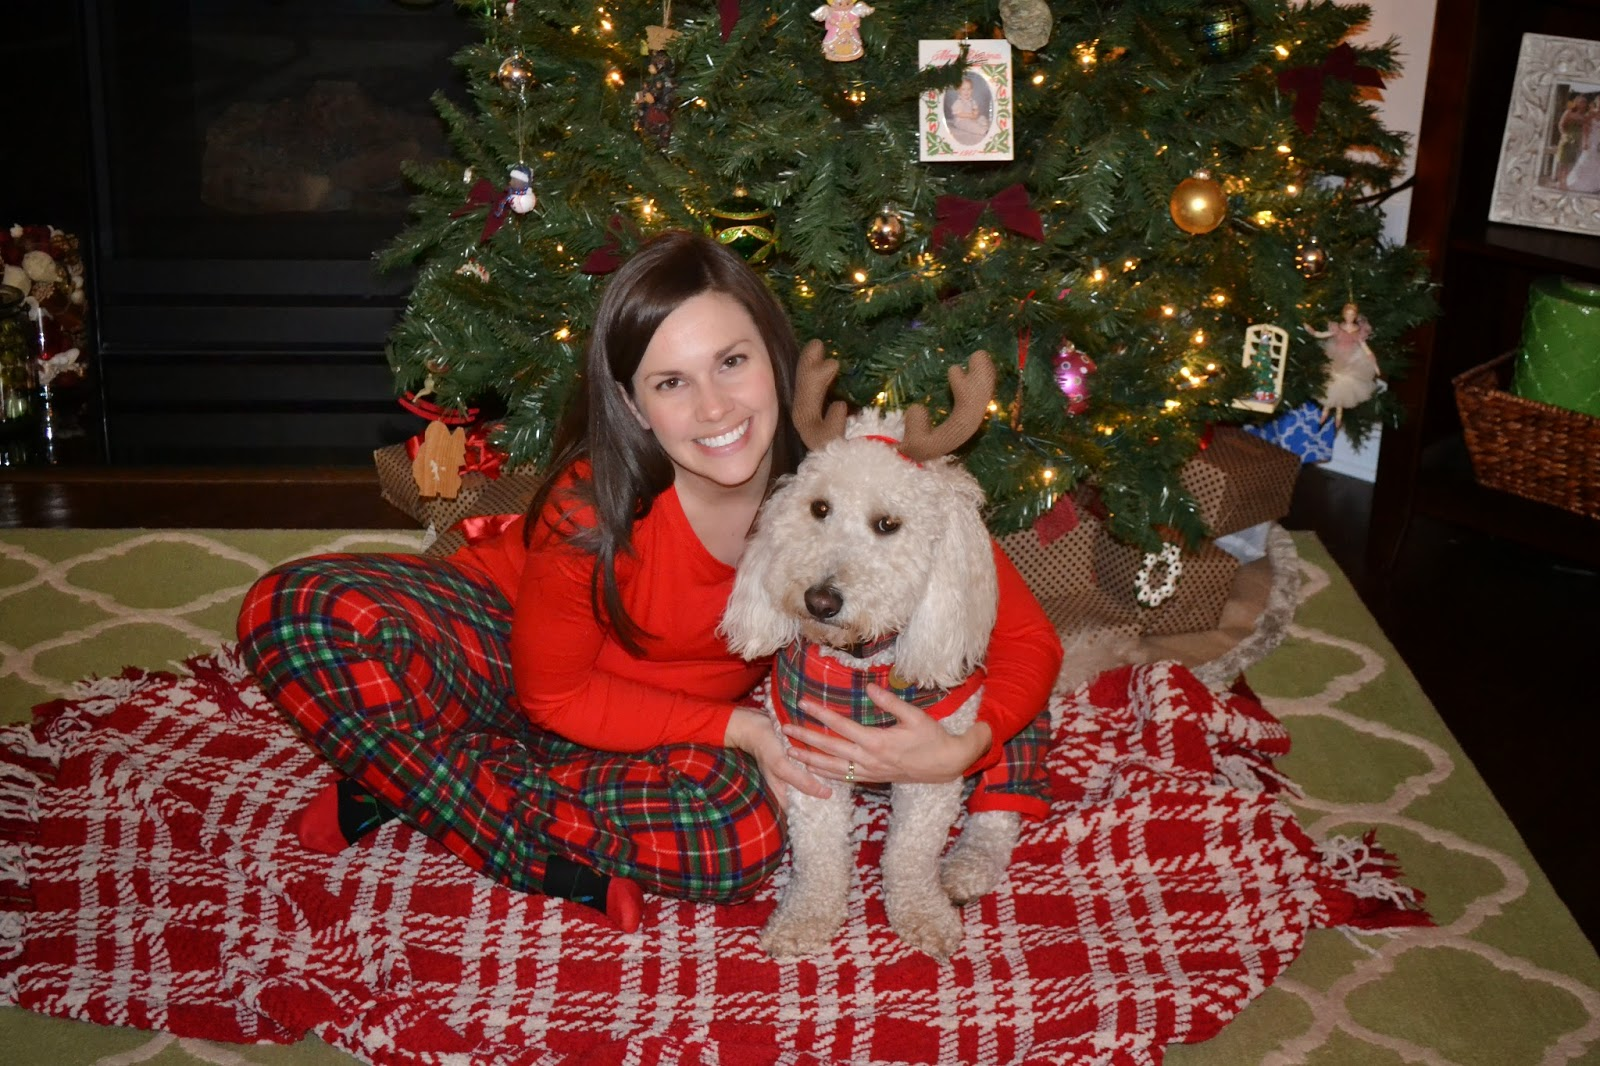 Dog Christmas Pajamas Target Monday  December 15  2014